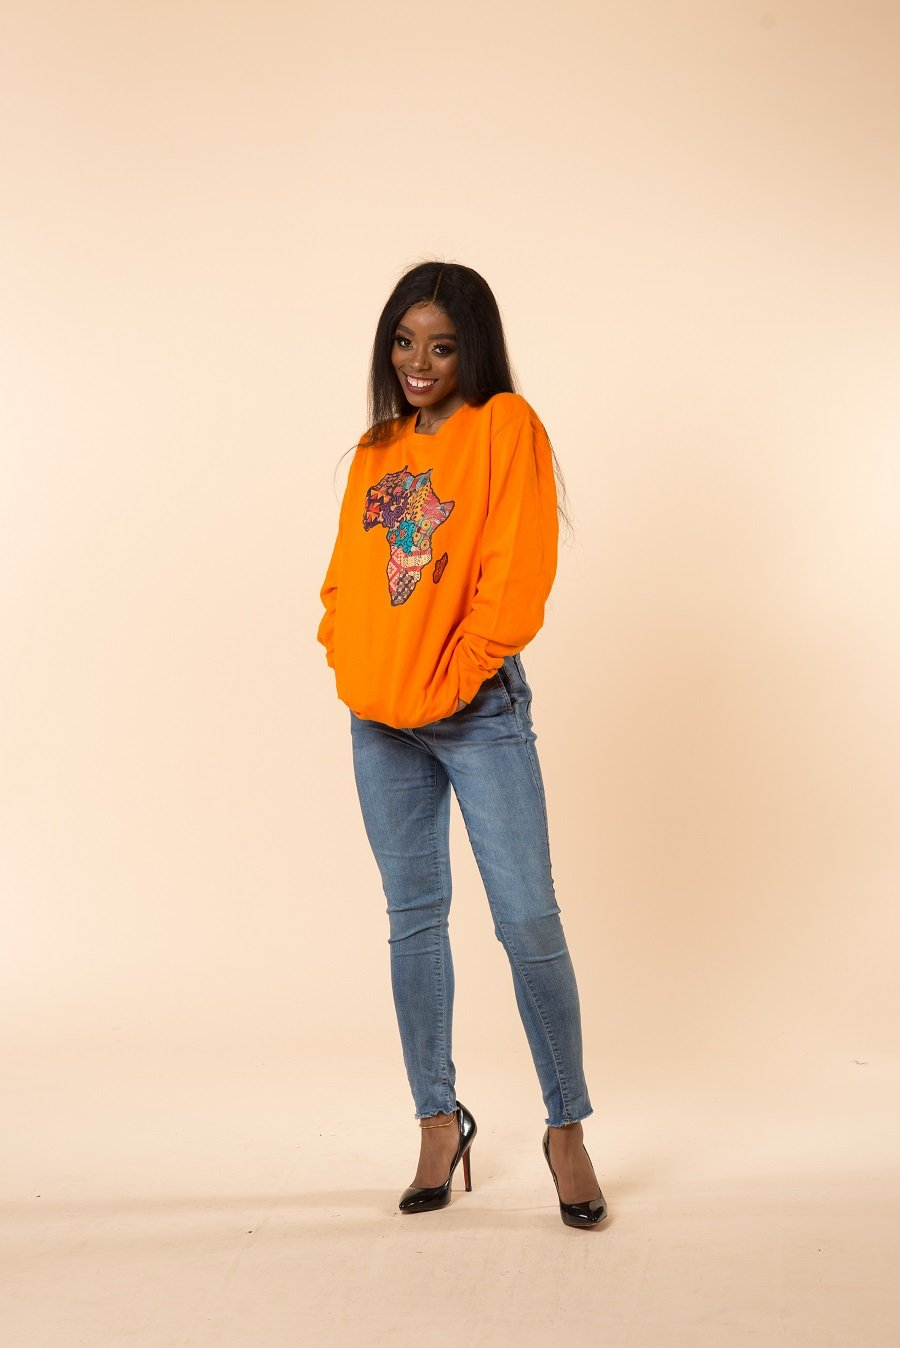 African Map Orange Sweatshirt Top - M.A.DKollection